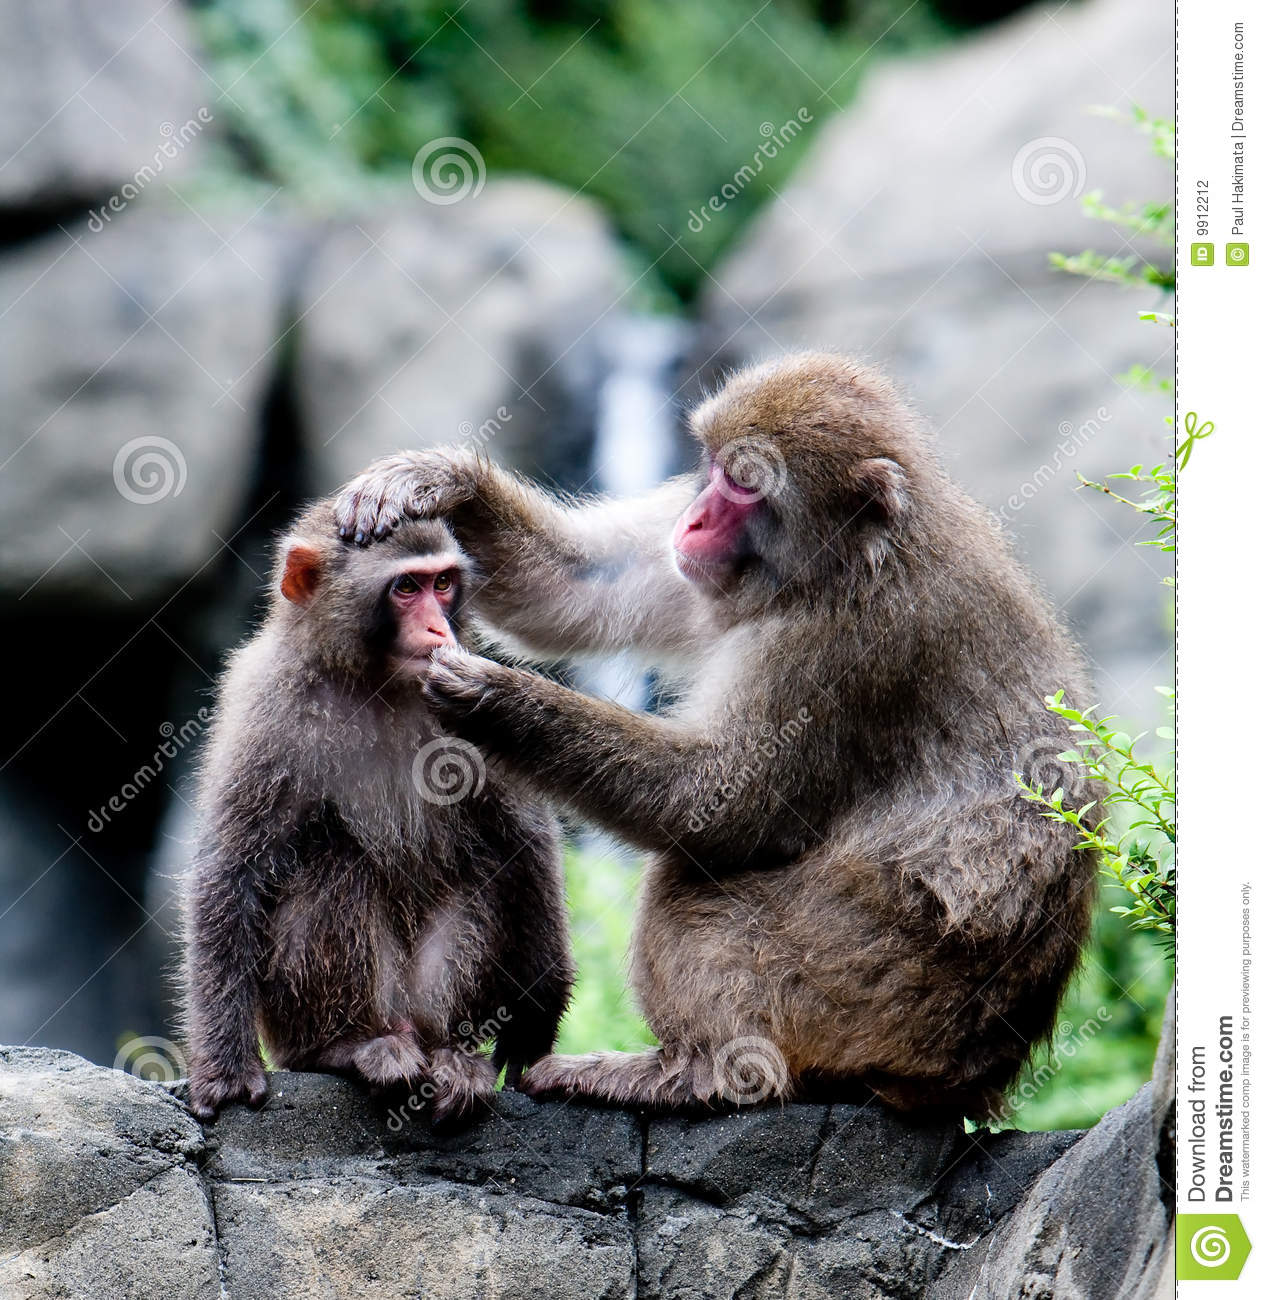 Don't Feed The Monkeys! 3 Ways To Help People Solve Their Own Problems